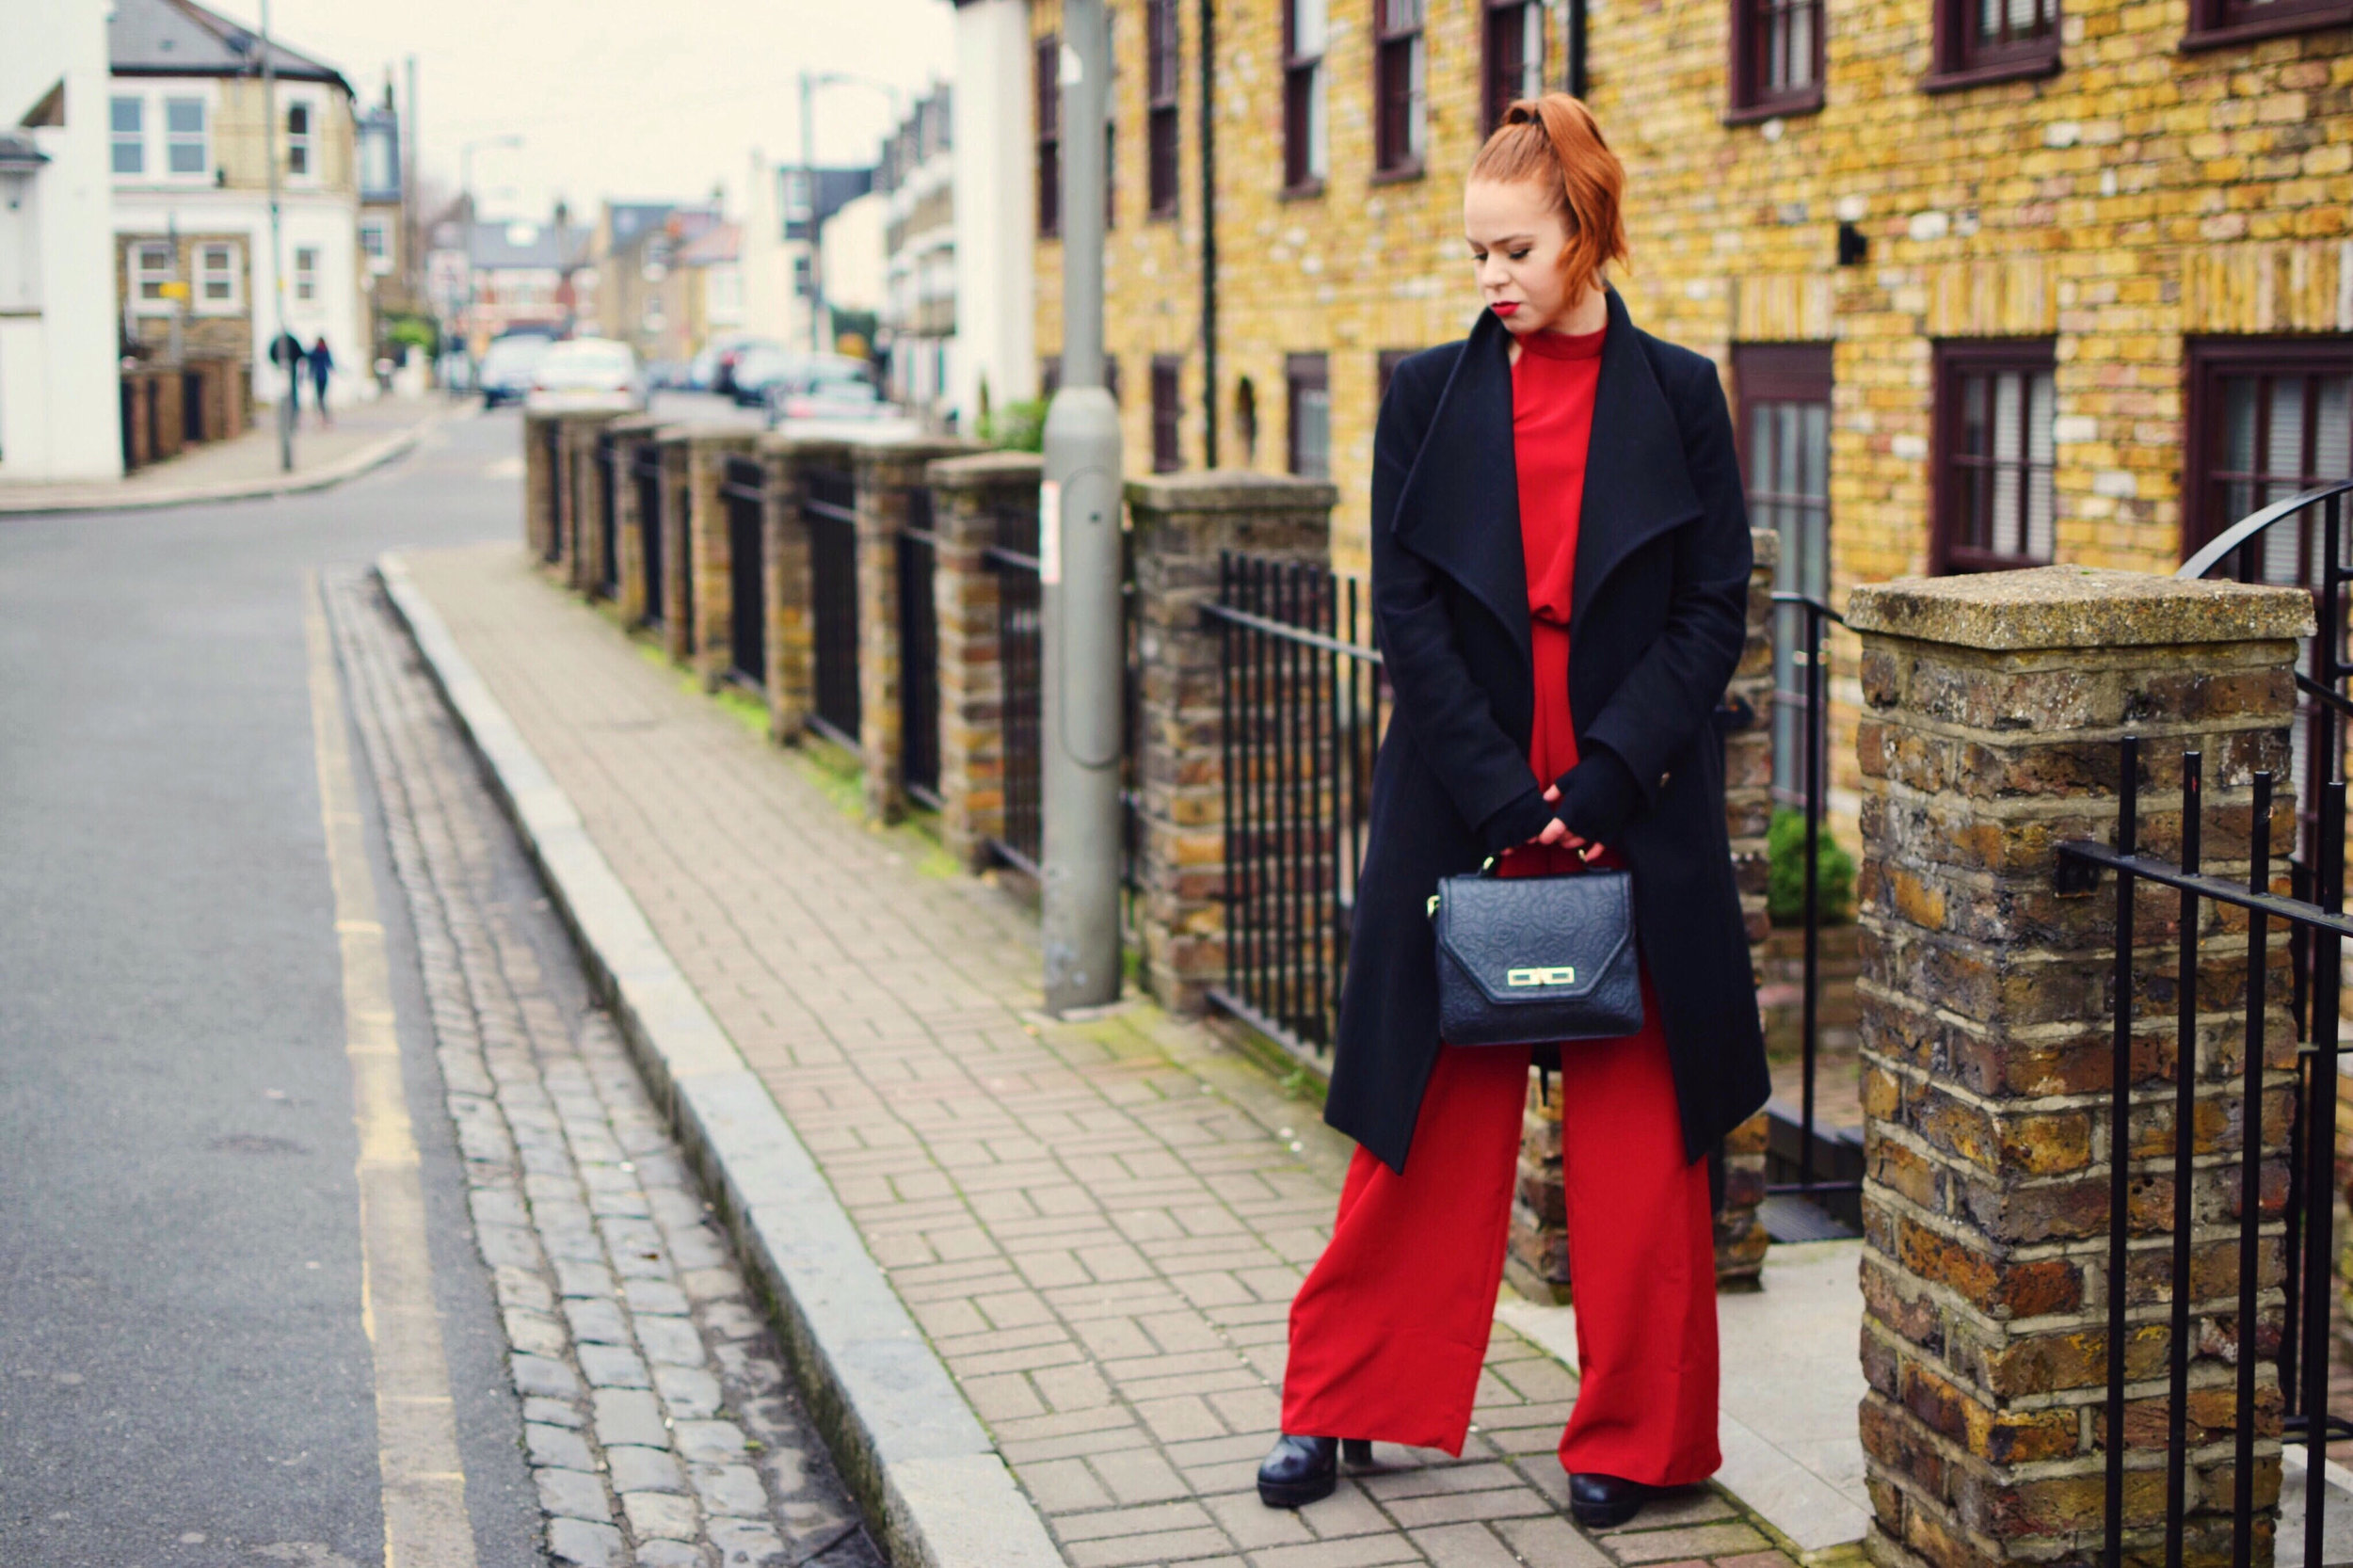 Photos by Glen Livingstone.I'm obsessed with this bold, wide- legged jumpsuit from  Lipsy . I'm also wearing: Miss KG Boots, Coast handbag, marino fingerless gloves from NZ and Ted Baker coat (all linked below).